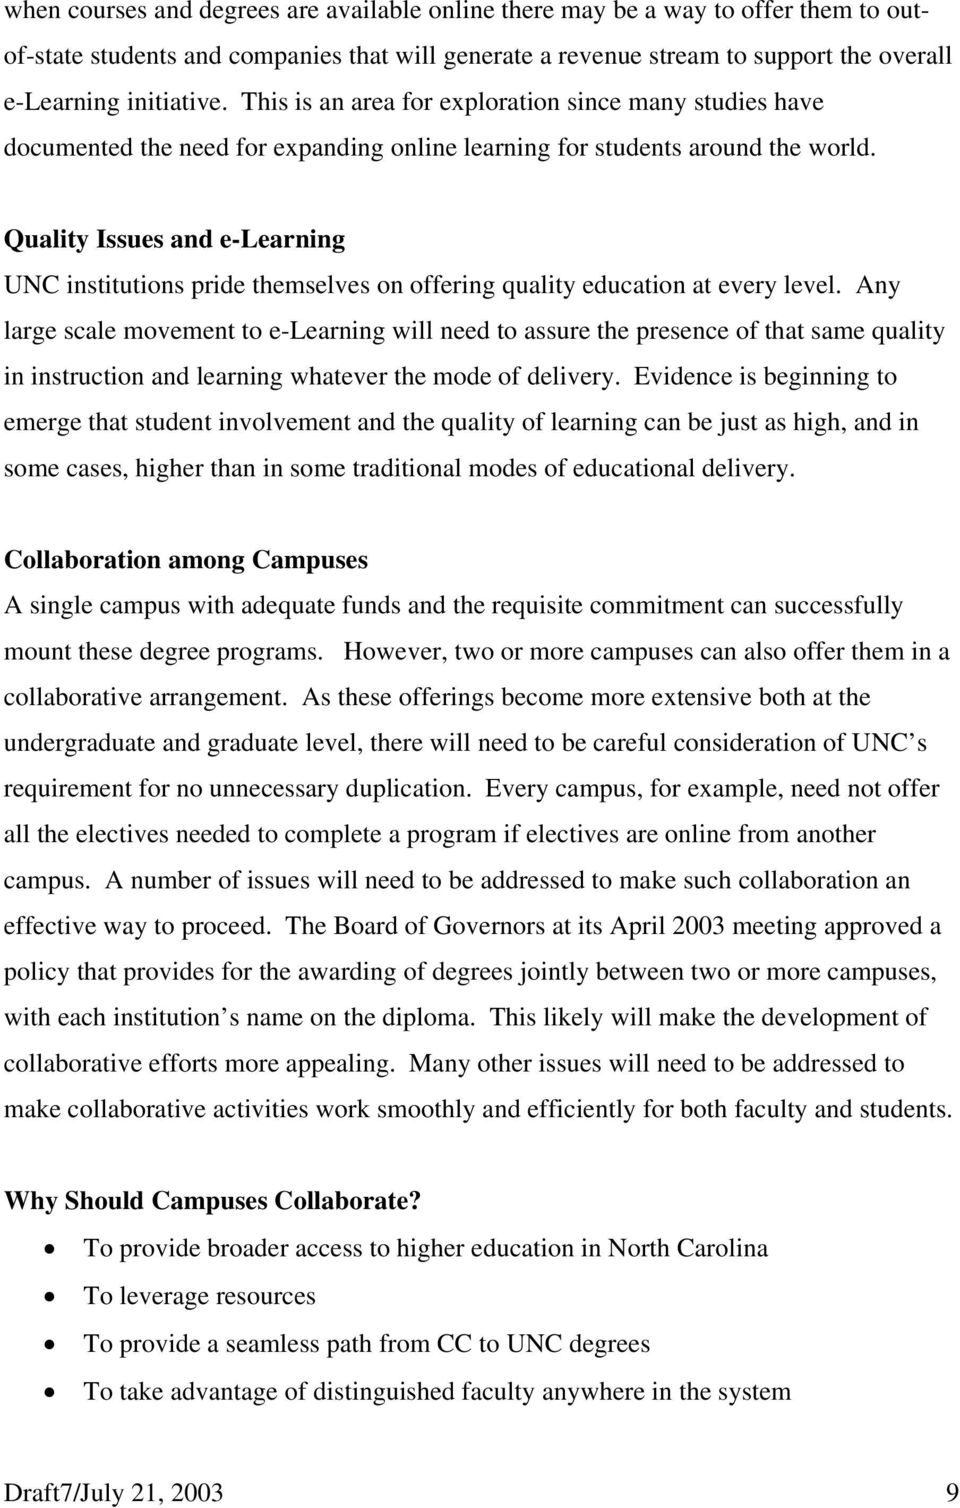 Quality Issues and e-learning UNC institutions pride themselves on offering quality education at every level.